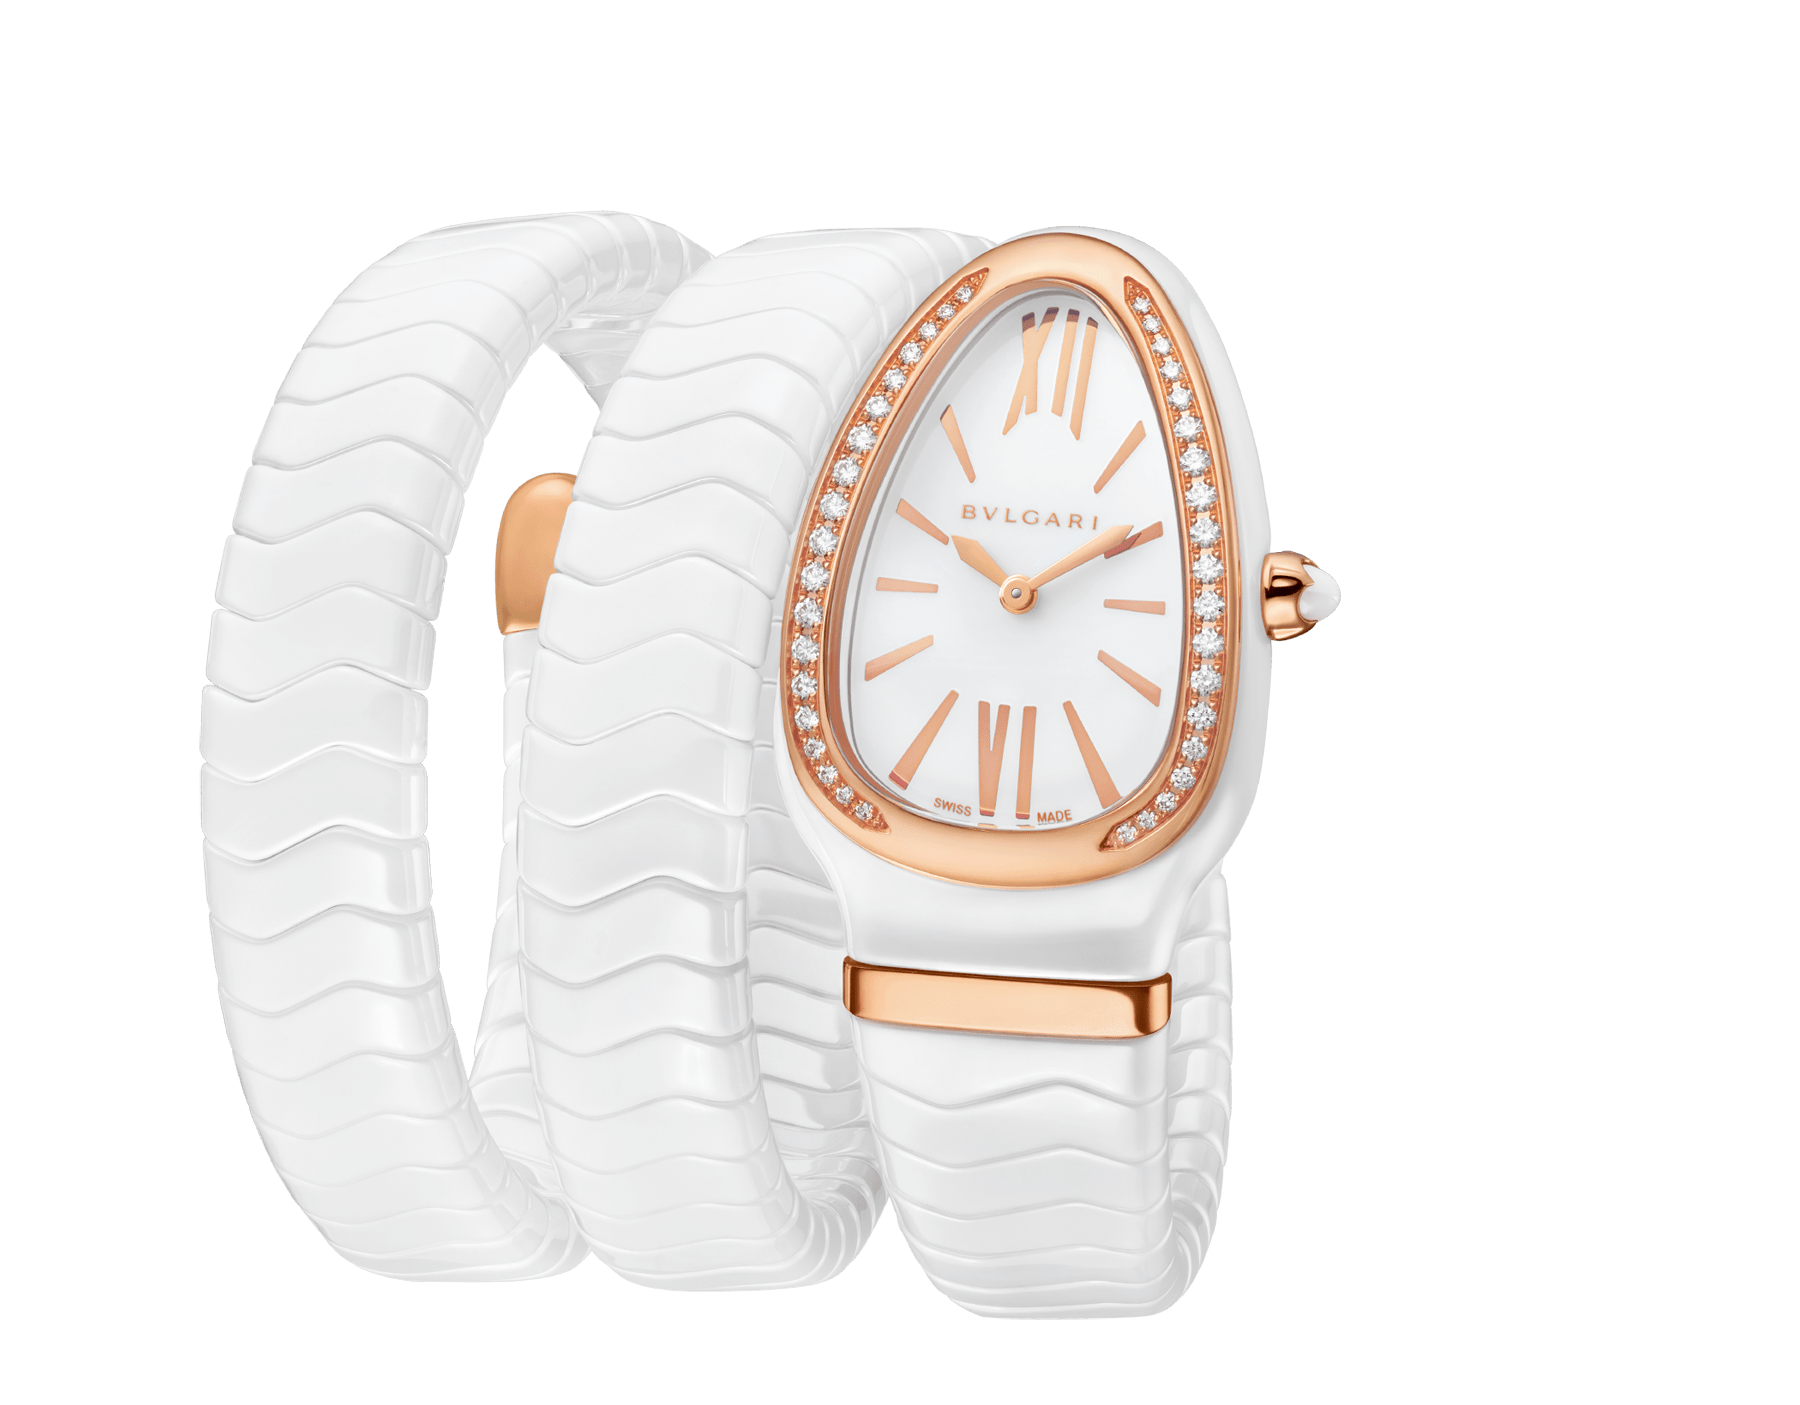 Serpenti Spiga watch with white ceramic case, 18 kt rose gold bezel set with diamonds, white lacquered polished dial and double spiral bracelet in white ceramic and 18 kt rose gold elements. 102886 image 2